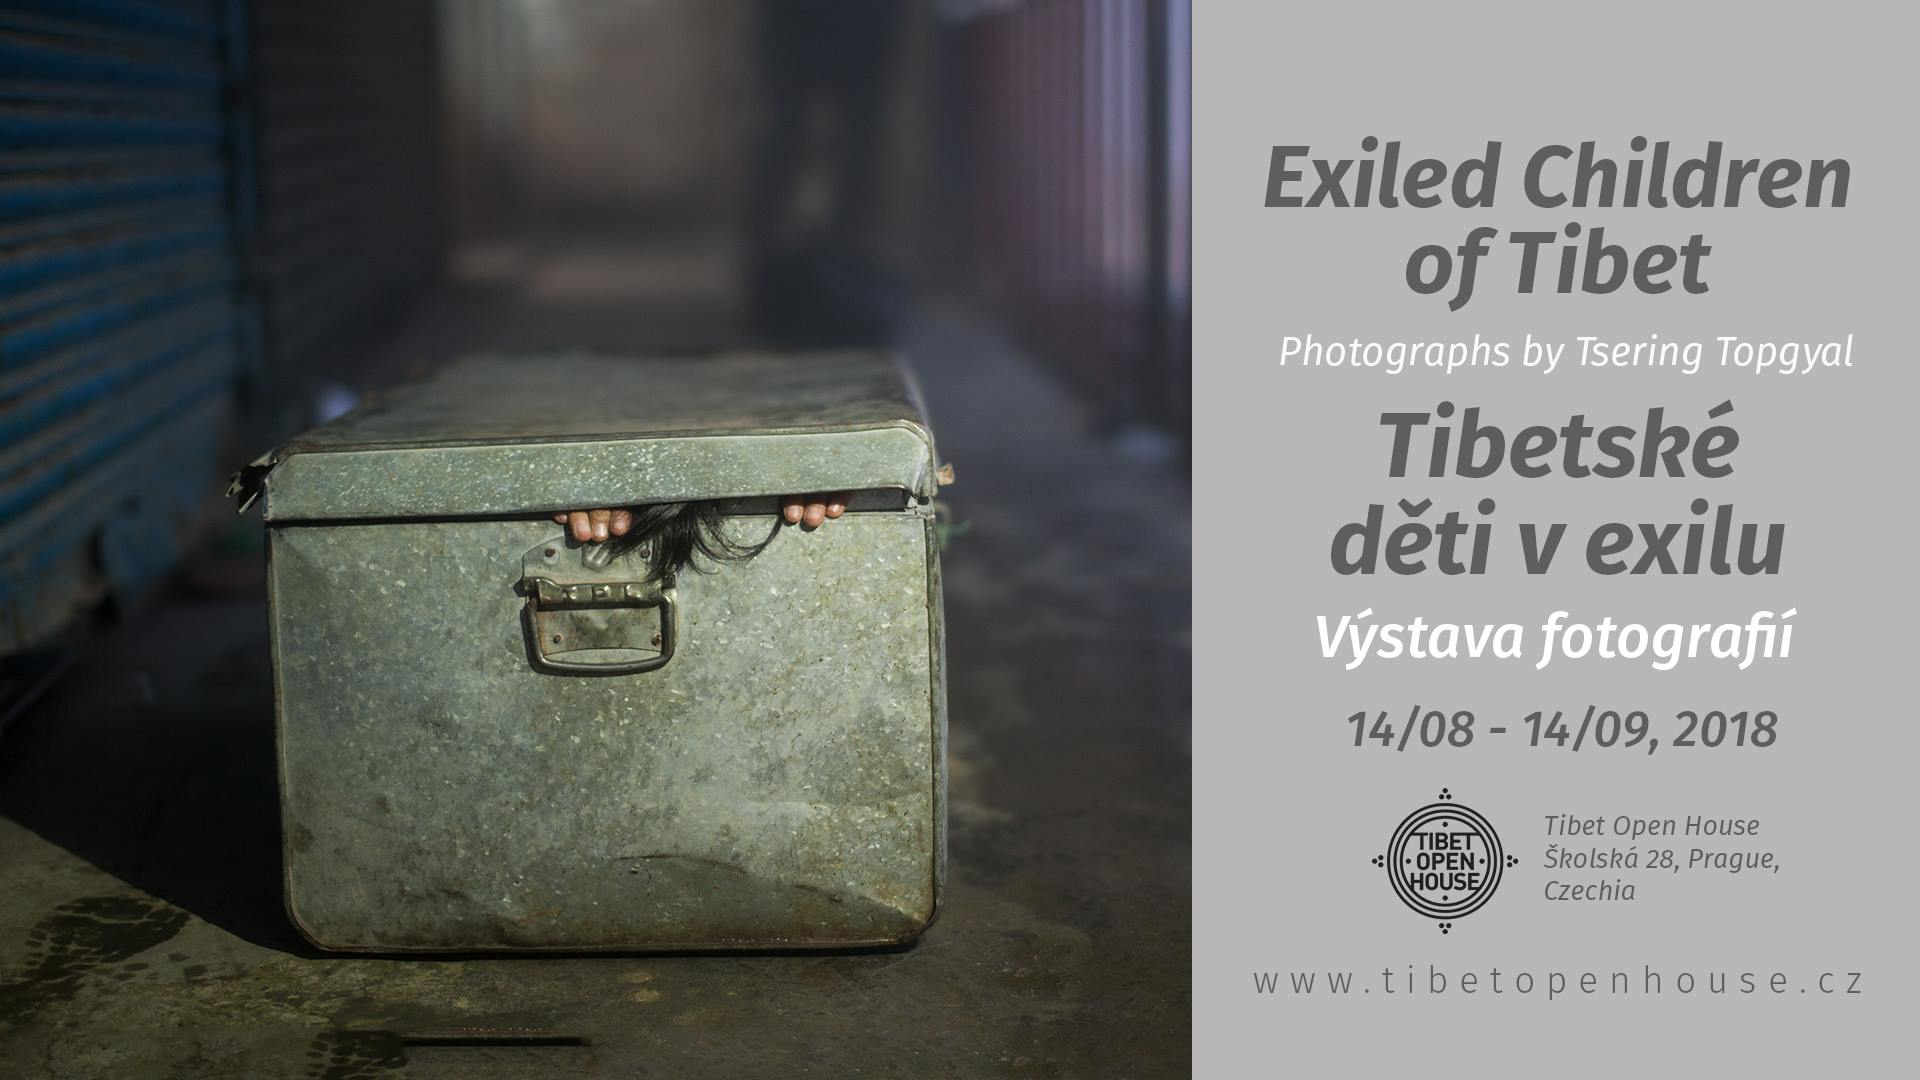 Photo Exhibition Exiled children of Tibet